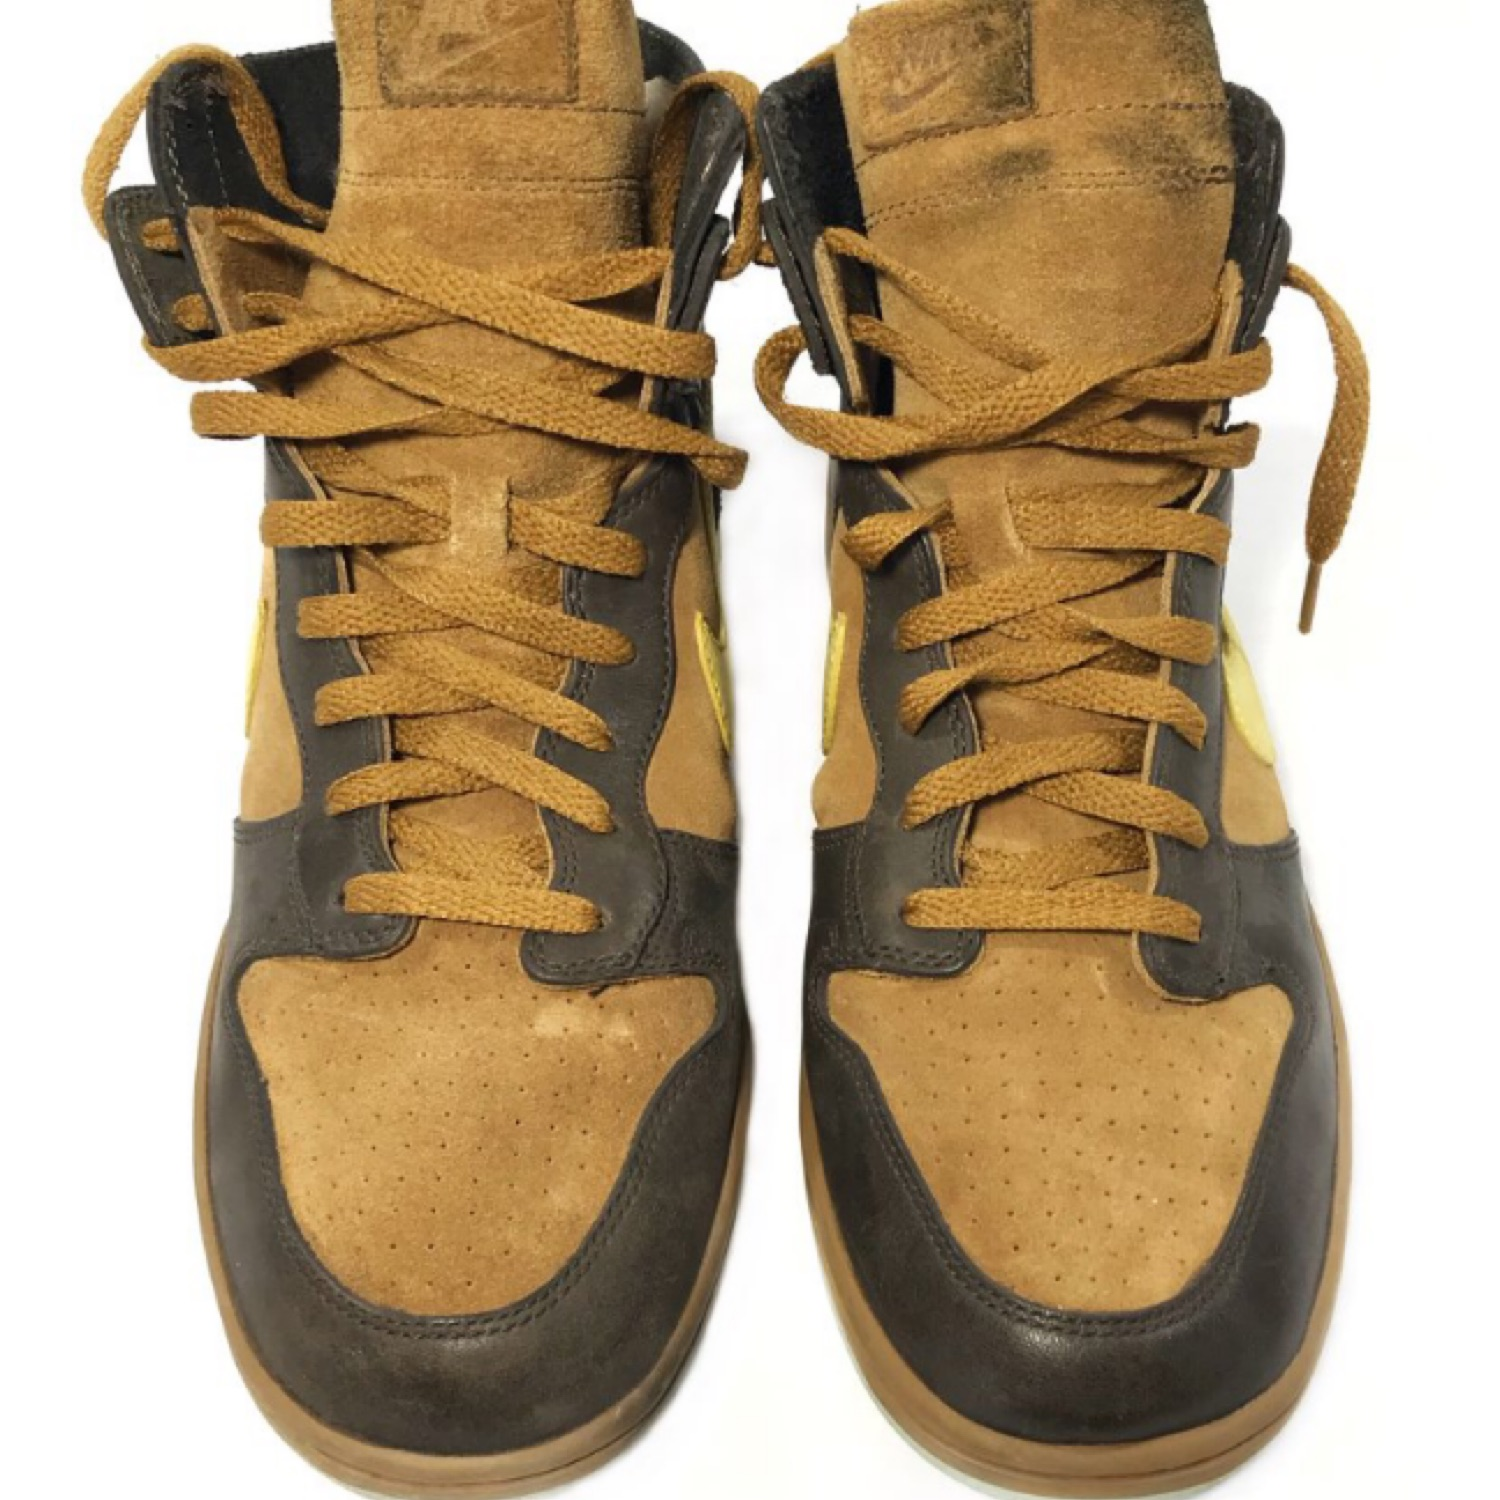 Vintage Nike Dunk High Nl Leather Suede